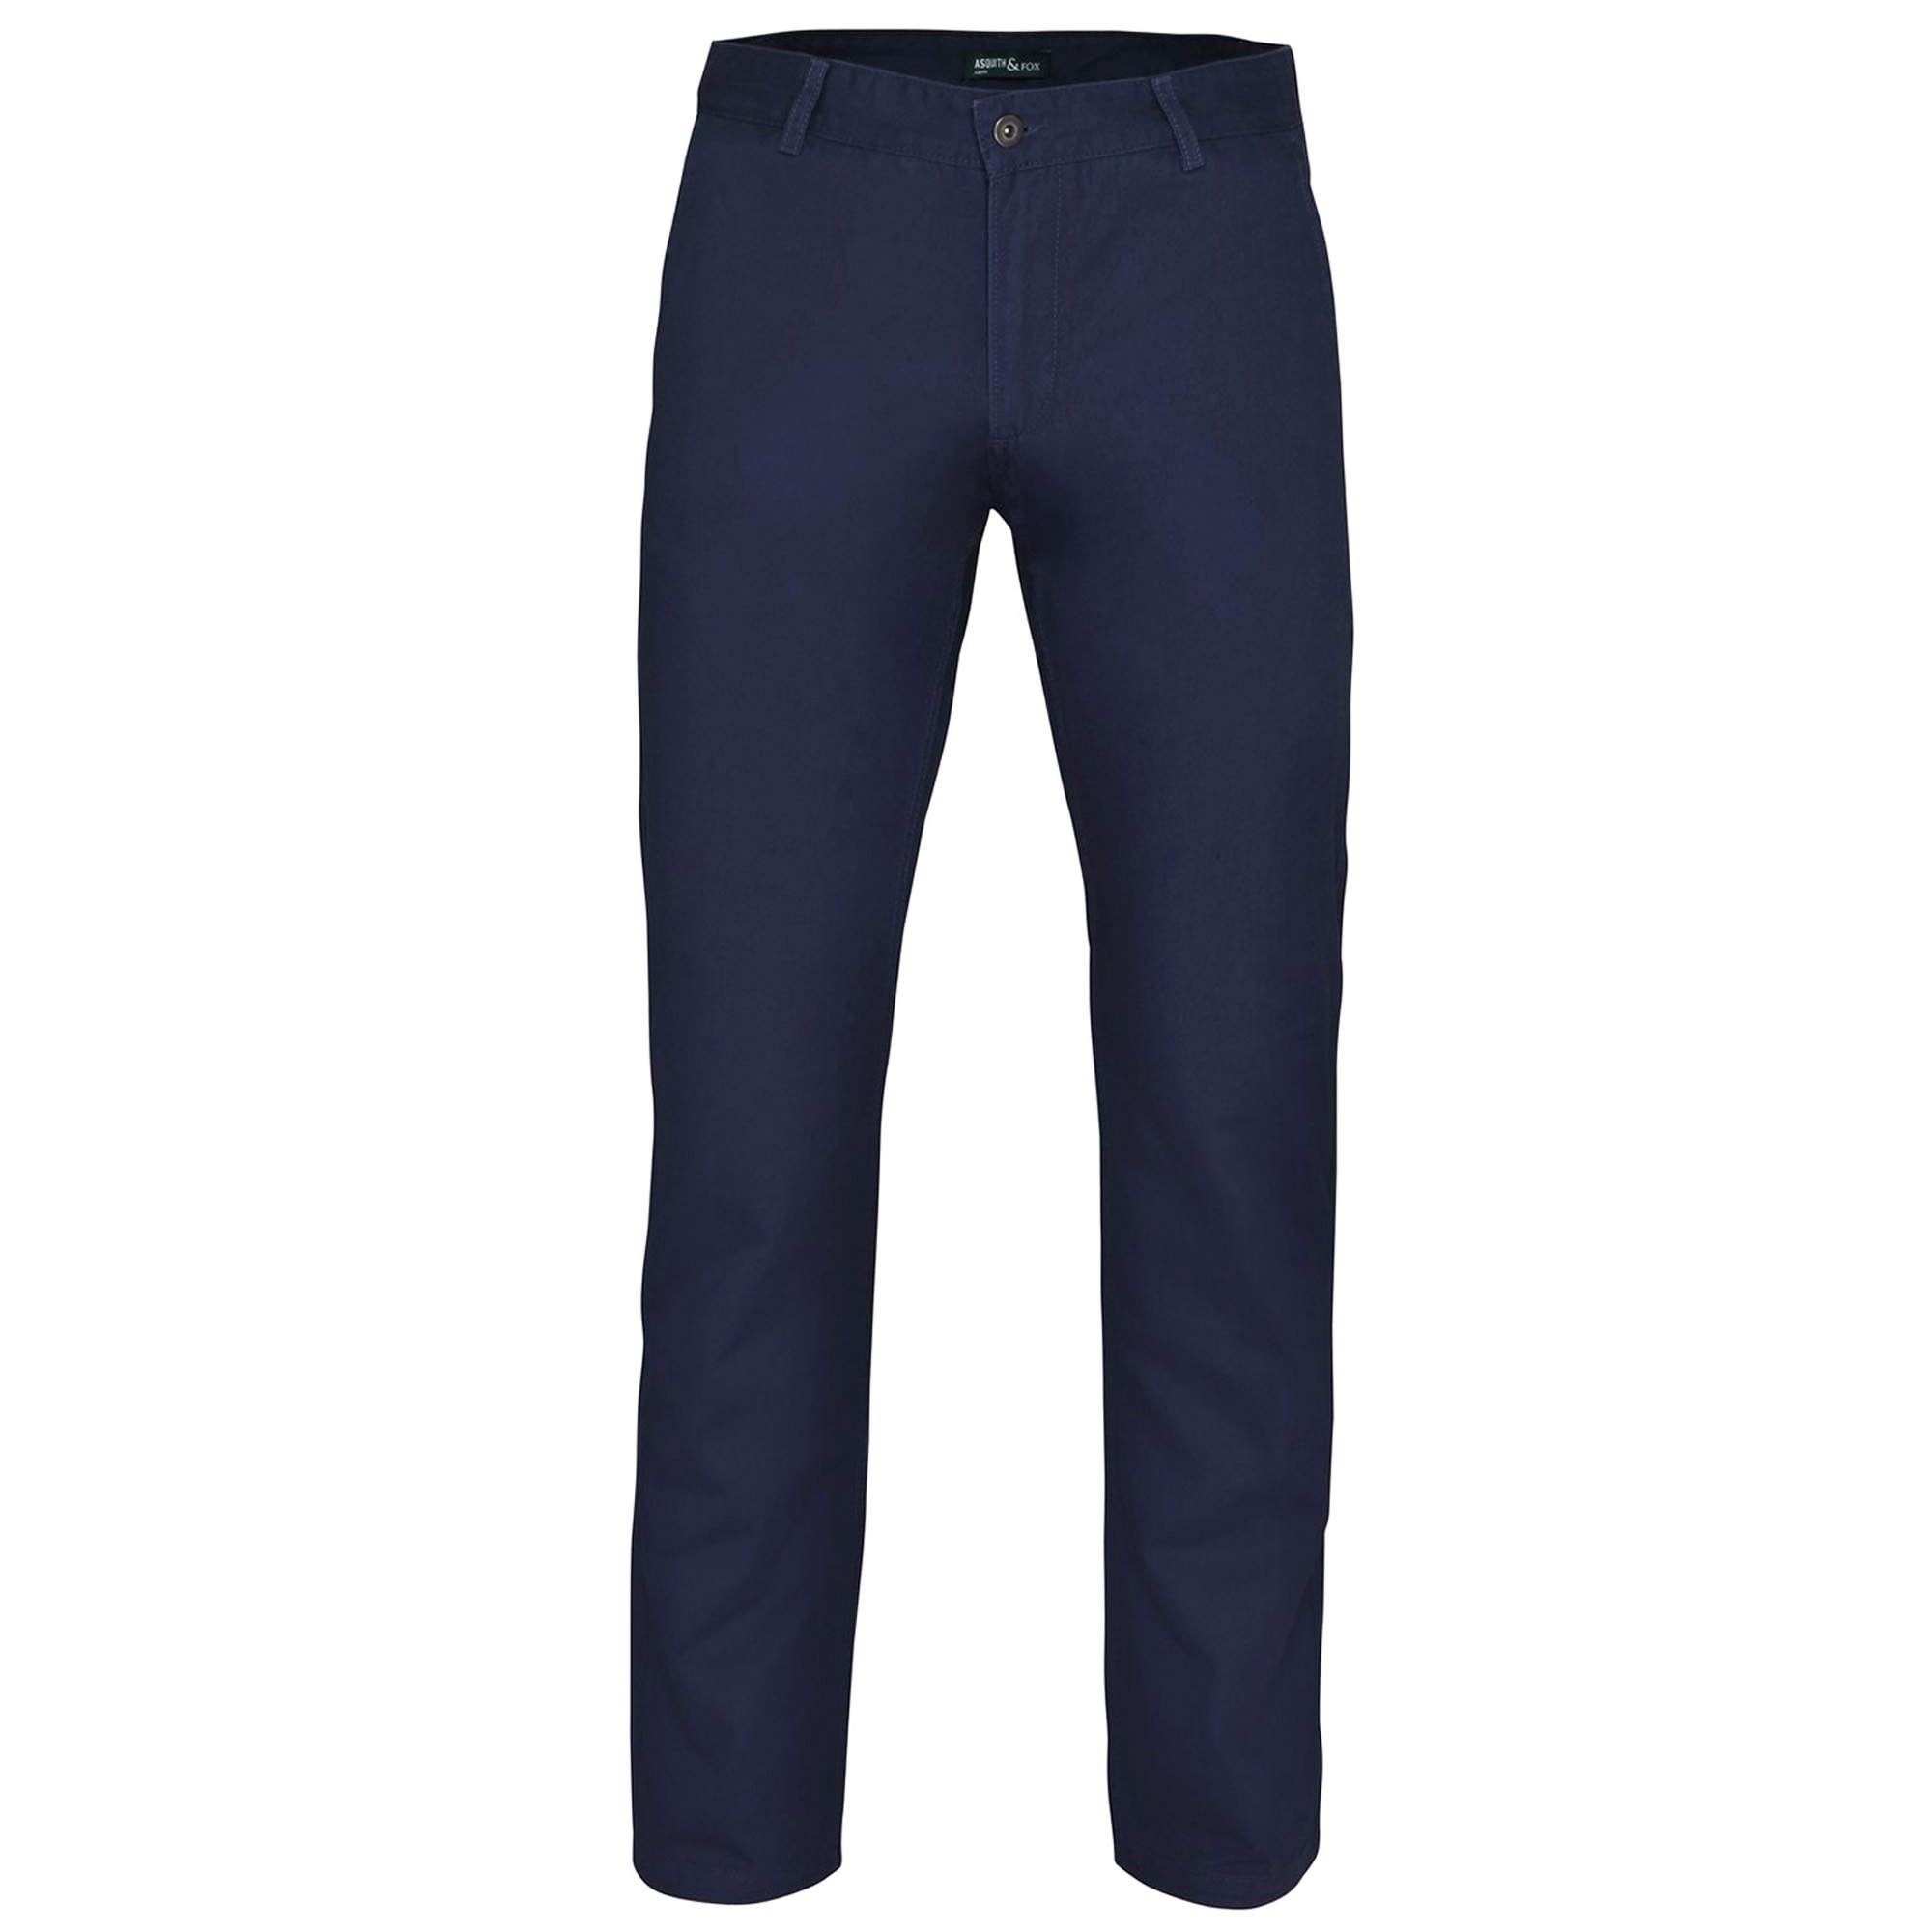 Asquith & Fox Mens Classic Casual Chinos/Trousers (3XLU) (Burgundy)